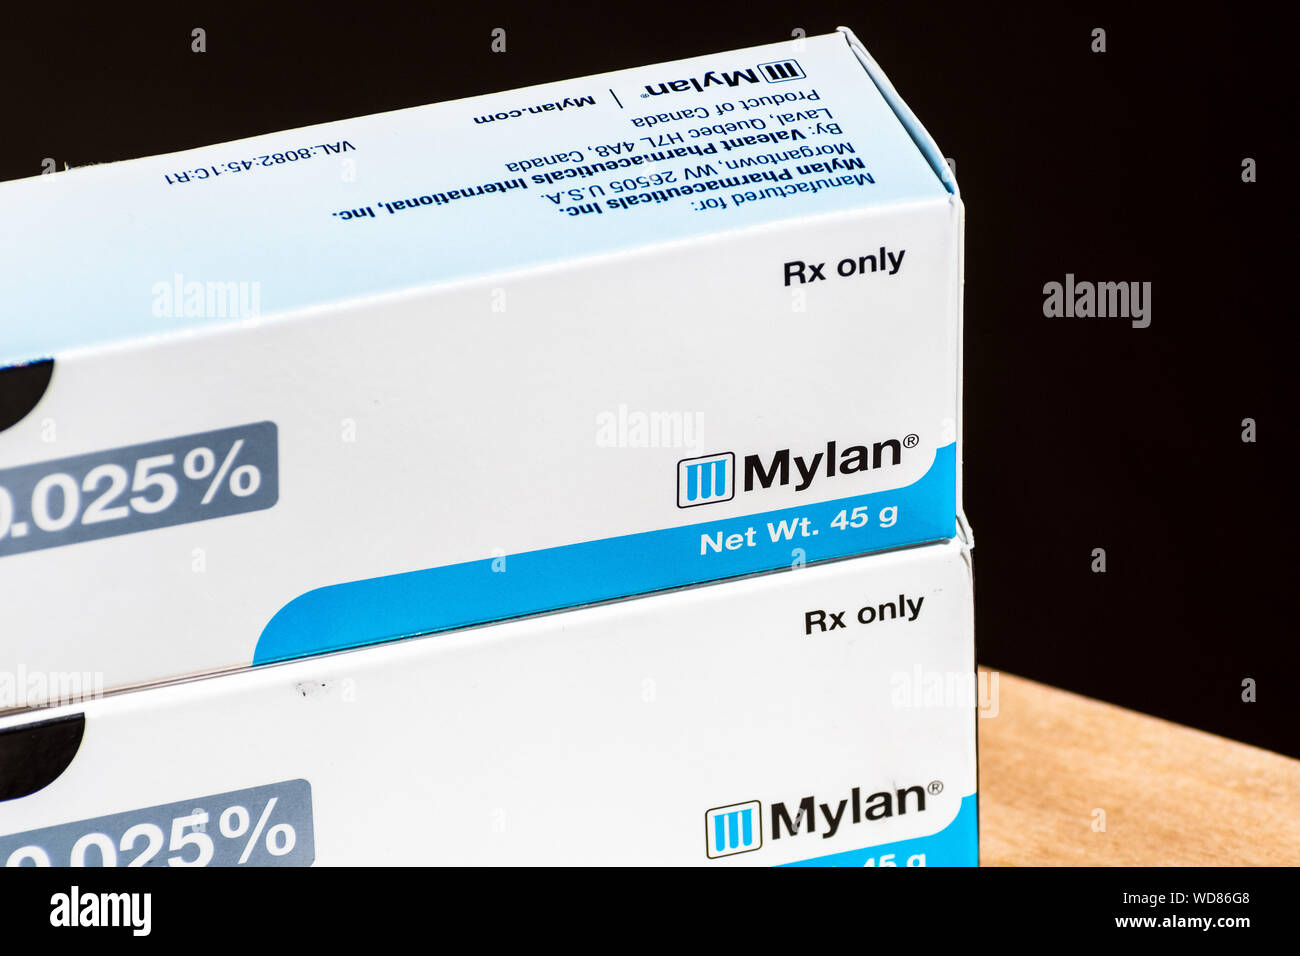 Mylan Stock Photos & Mylan Stock Images - Alamy